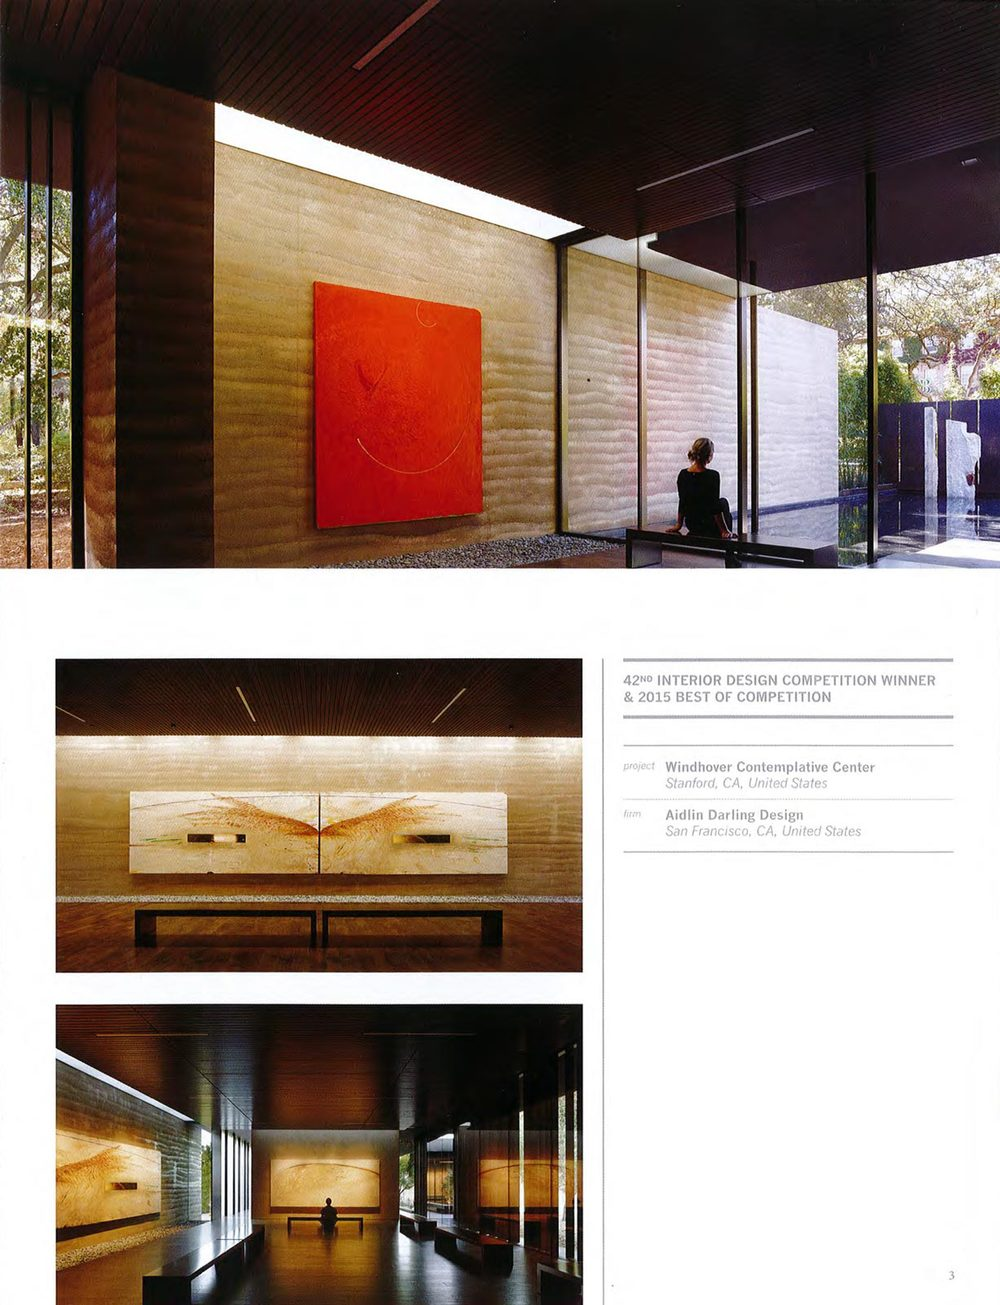 Windhover Contemplative Center Award Page Detailing The Best Of Competition  Award.